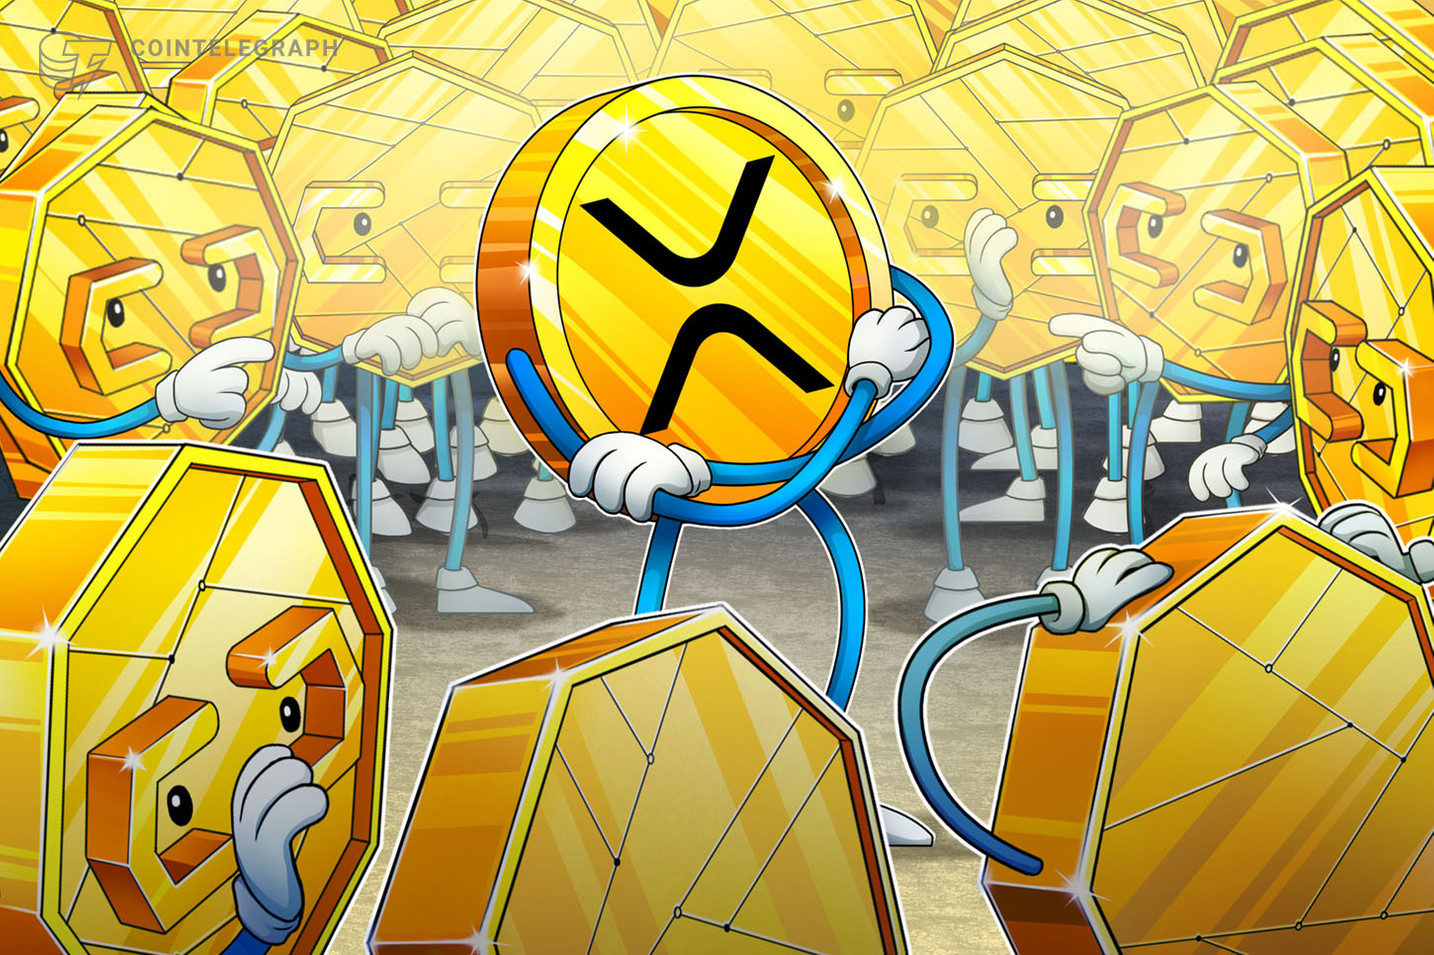 Mystery surrounds bizarre class-action lawsuit against Ripple over $48 loss